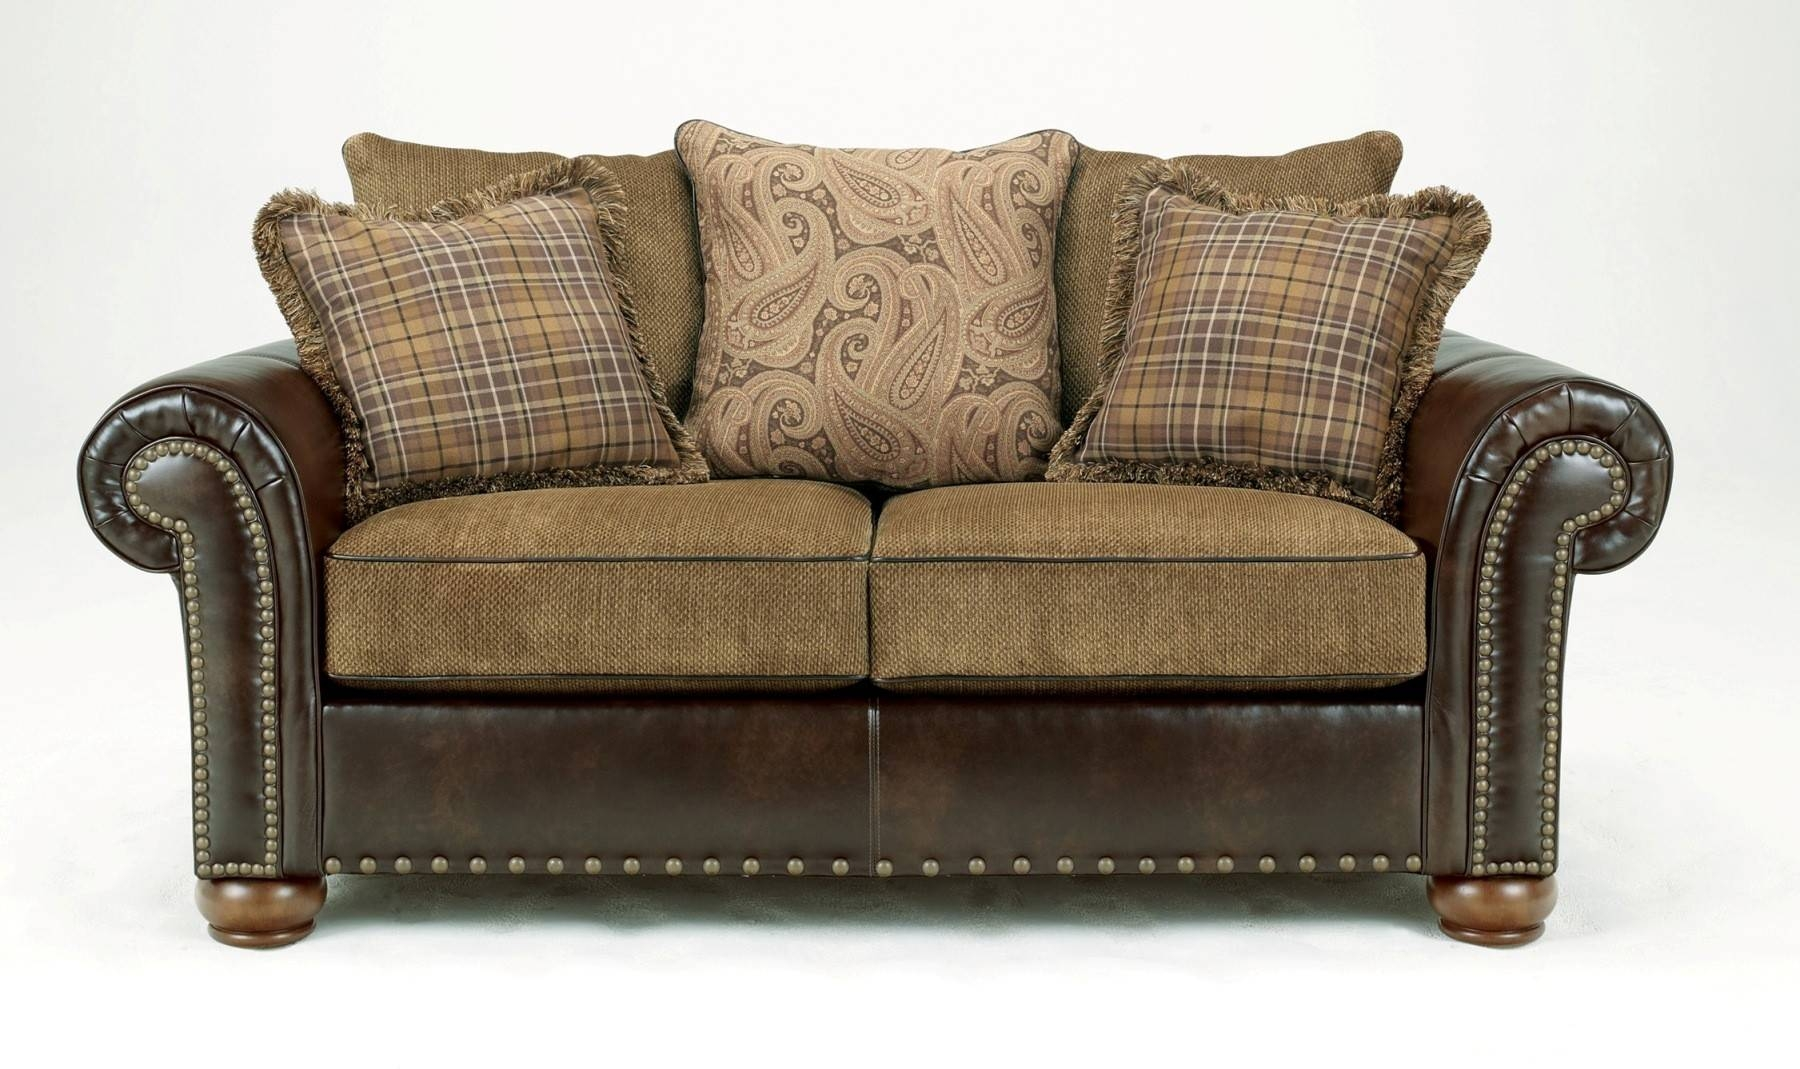 Exterior: Bradington Truffle And Bradington Sofa within Bradington Truffle Sofas (Image 9 of 15)